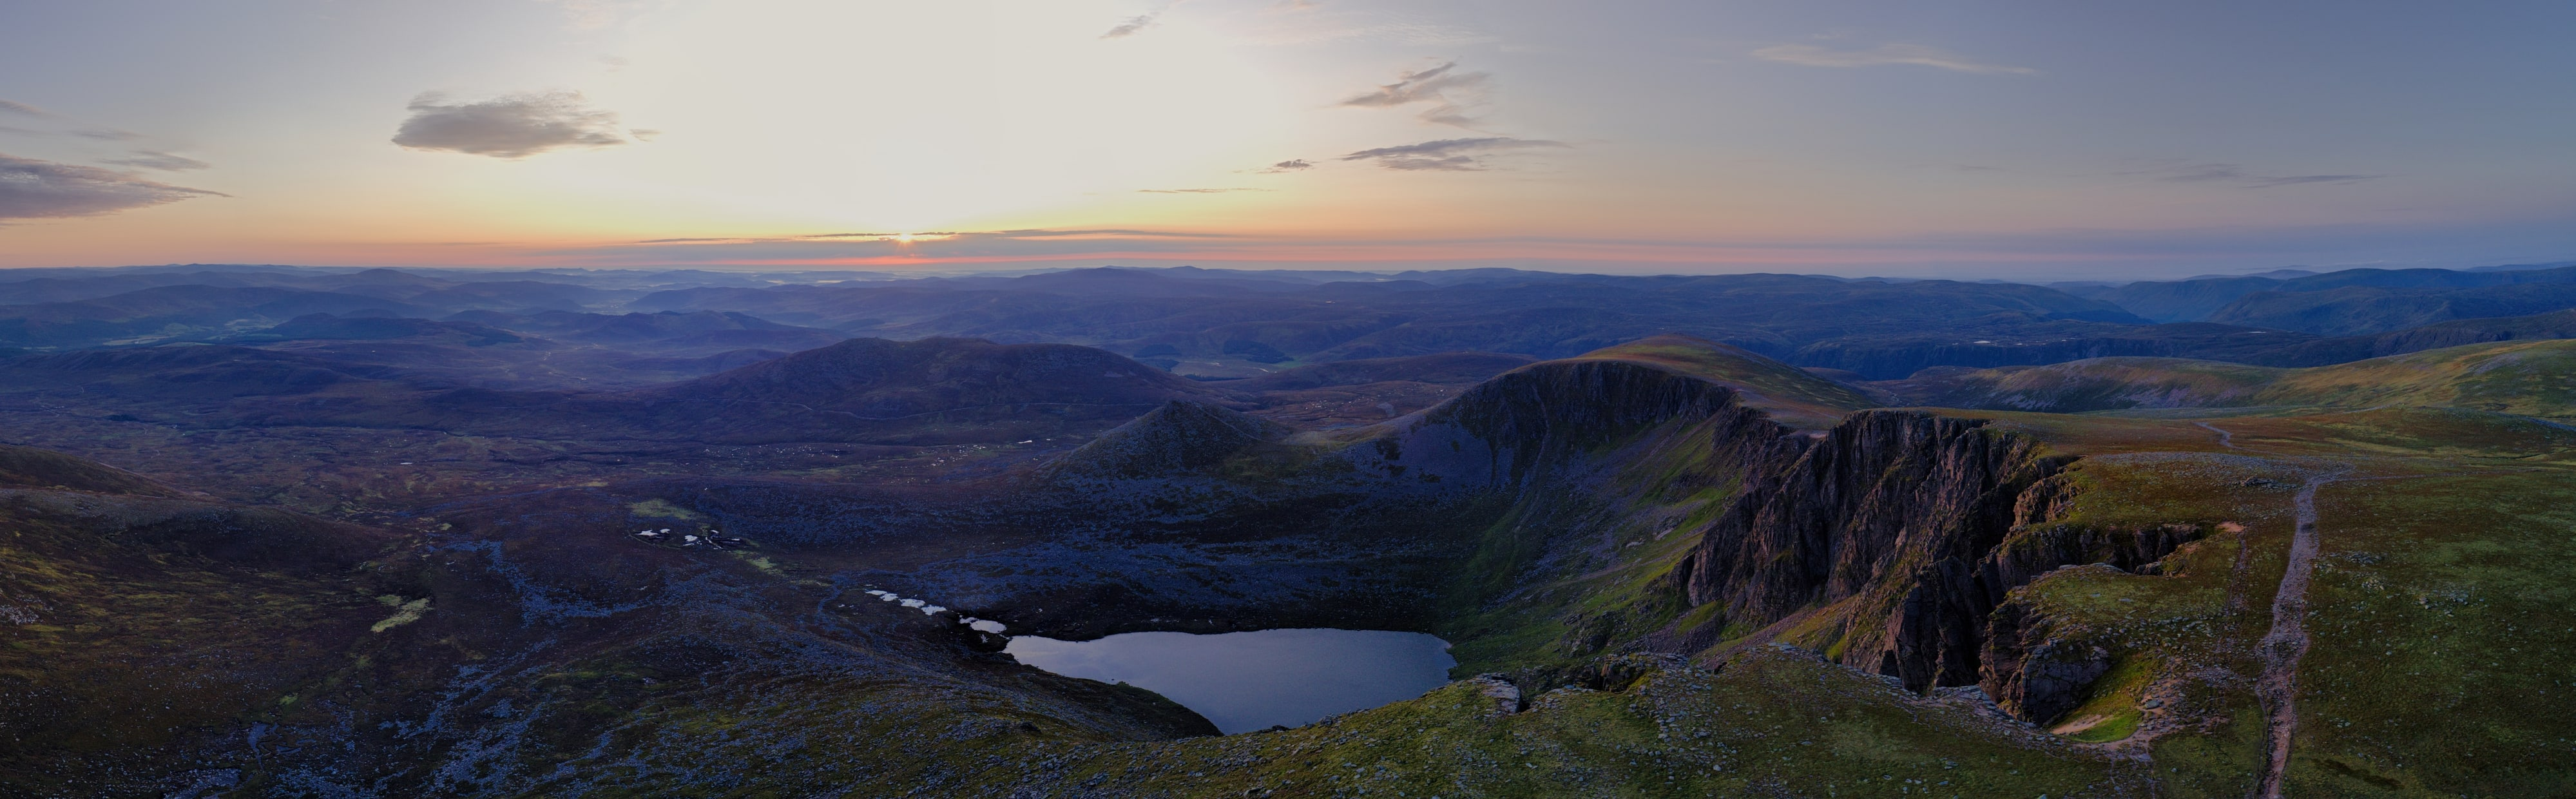 Sunrise over Lochnagar. The Cairngorms, Scotland. DJI Mavic 2 Pro